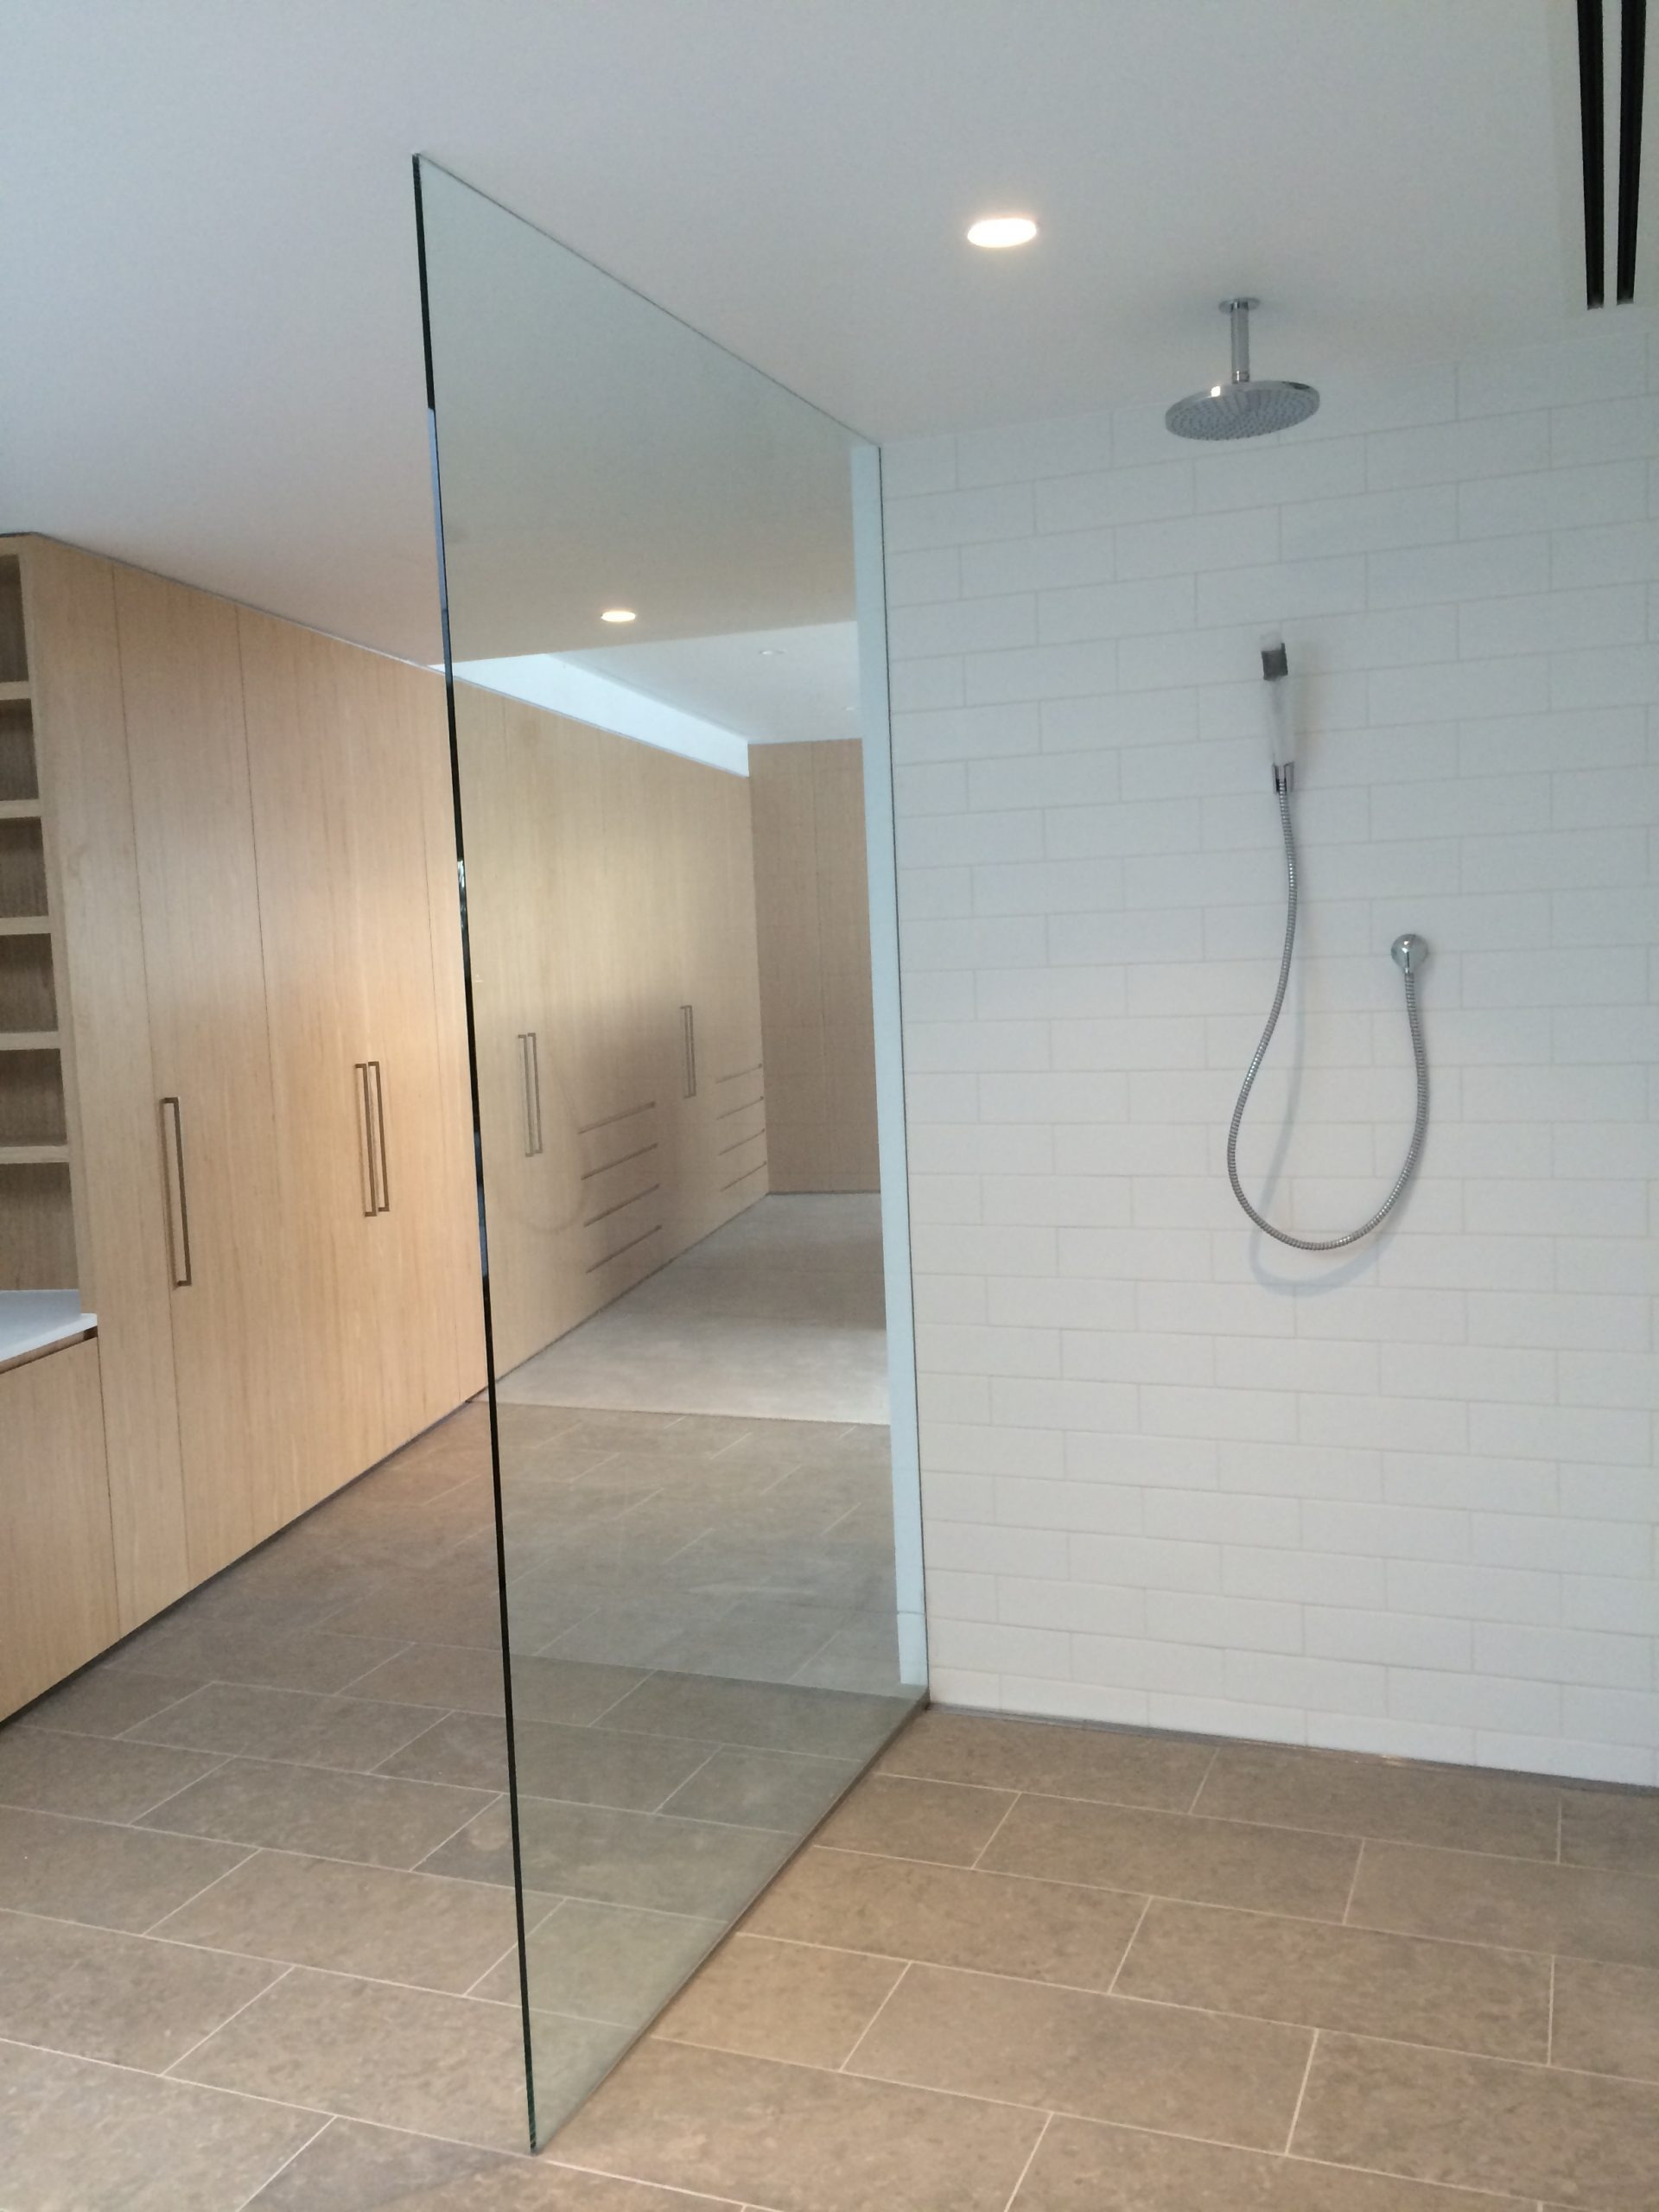 Glass Wall Panels Ireland Shower Cost Uk In Bathrooms scaled